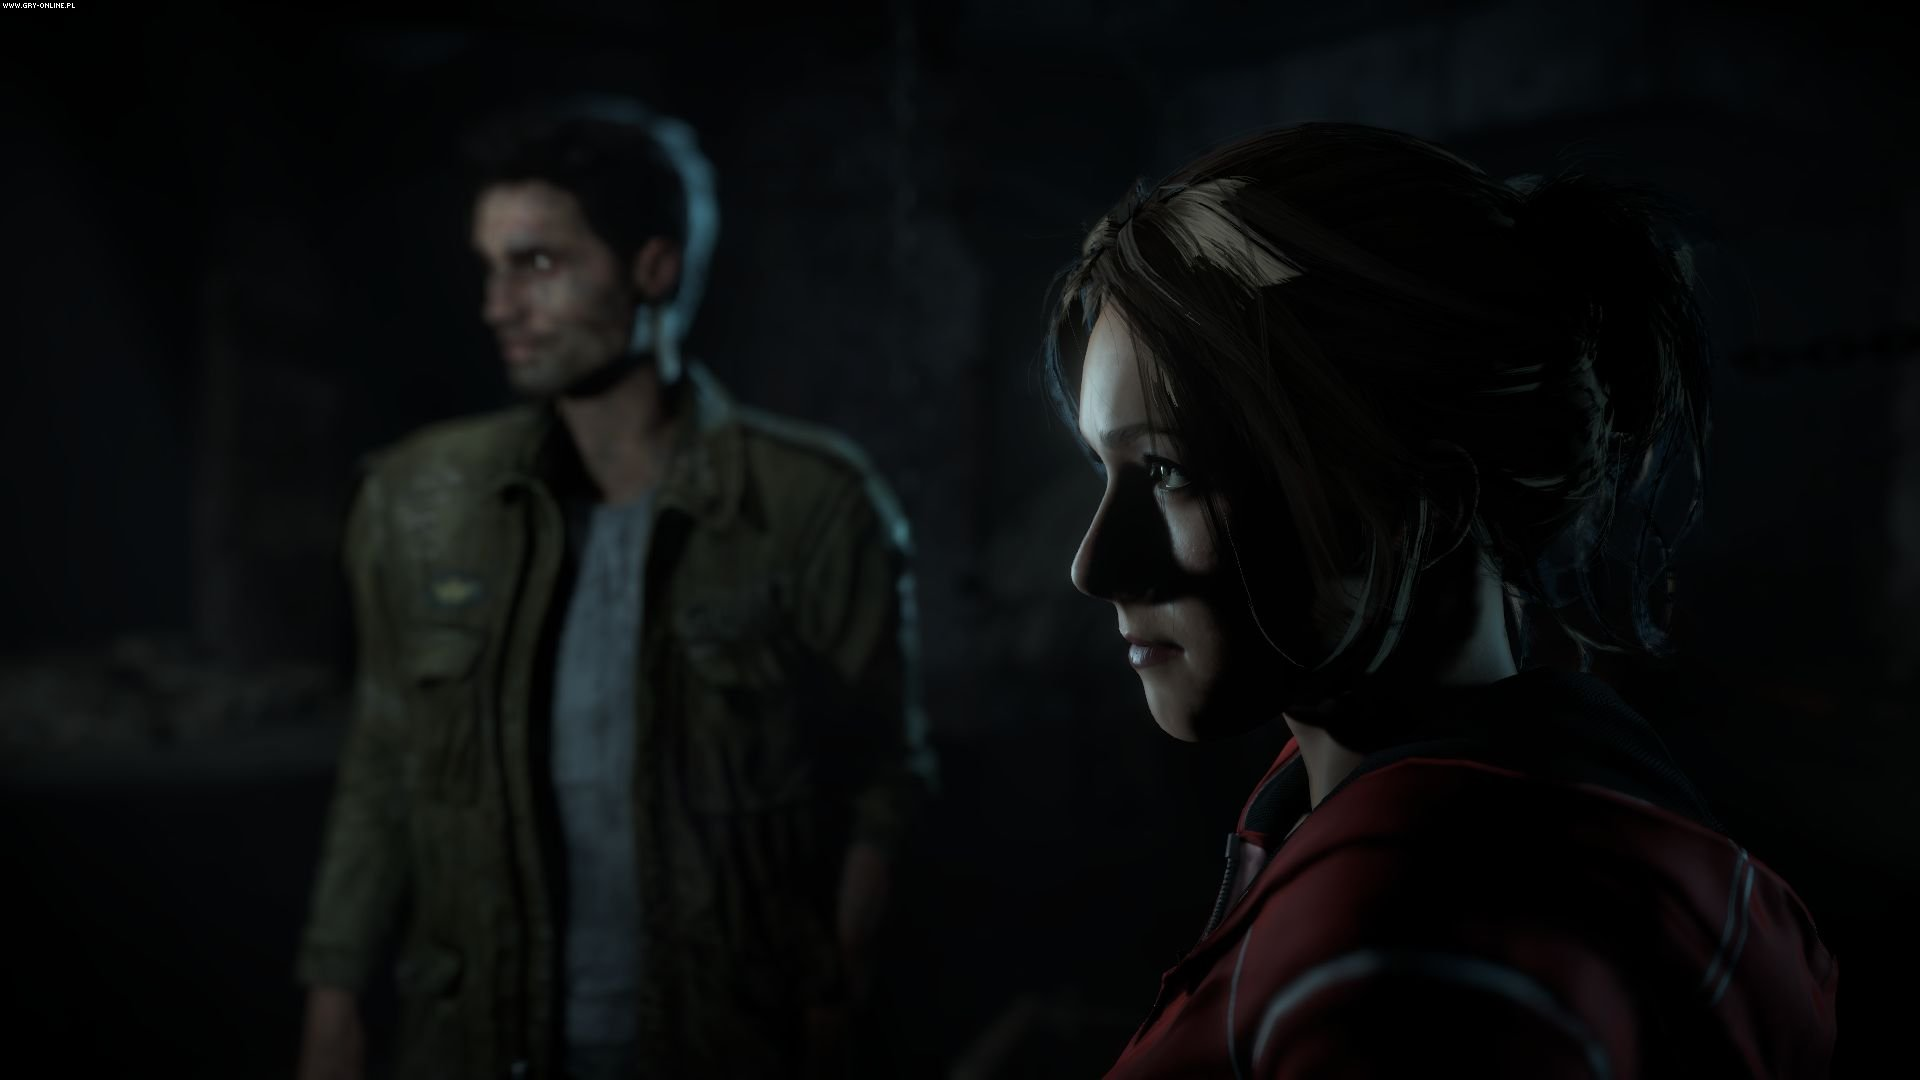 Until Dawn PS4 Games Image 42/91, Supermassive Games, Sony Interactive Entertainment